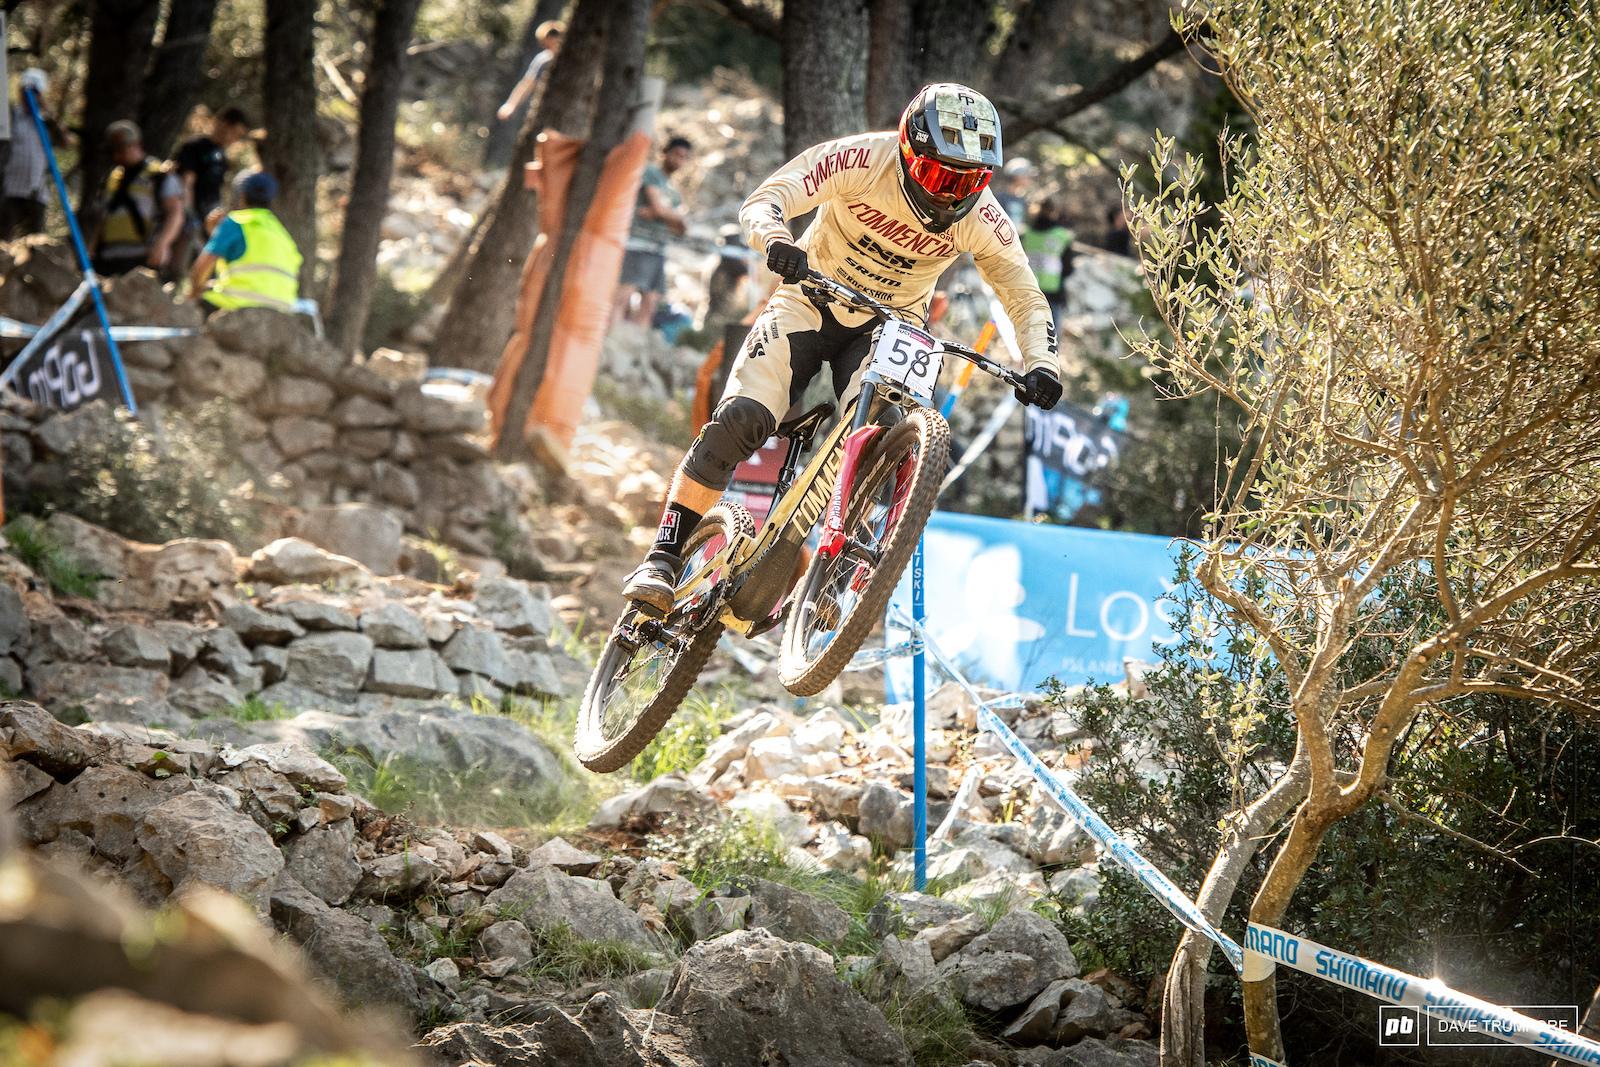 Remi Thirion with the racer style in a section that saw most people having to pull extra hard to clear the big gap.